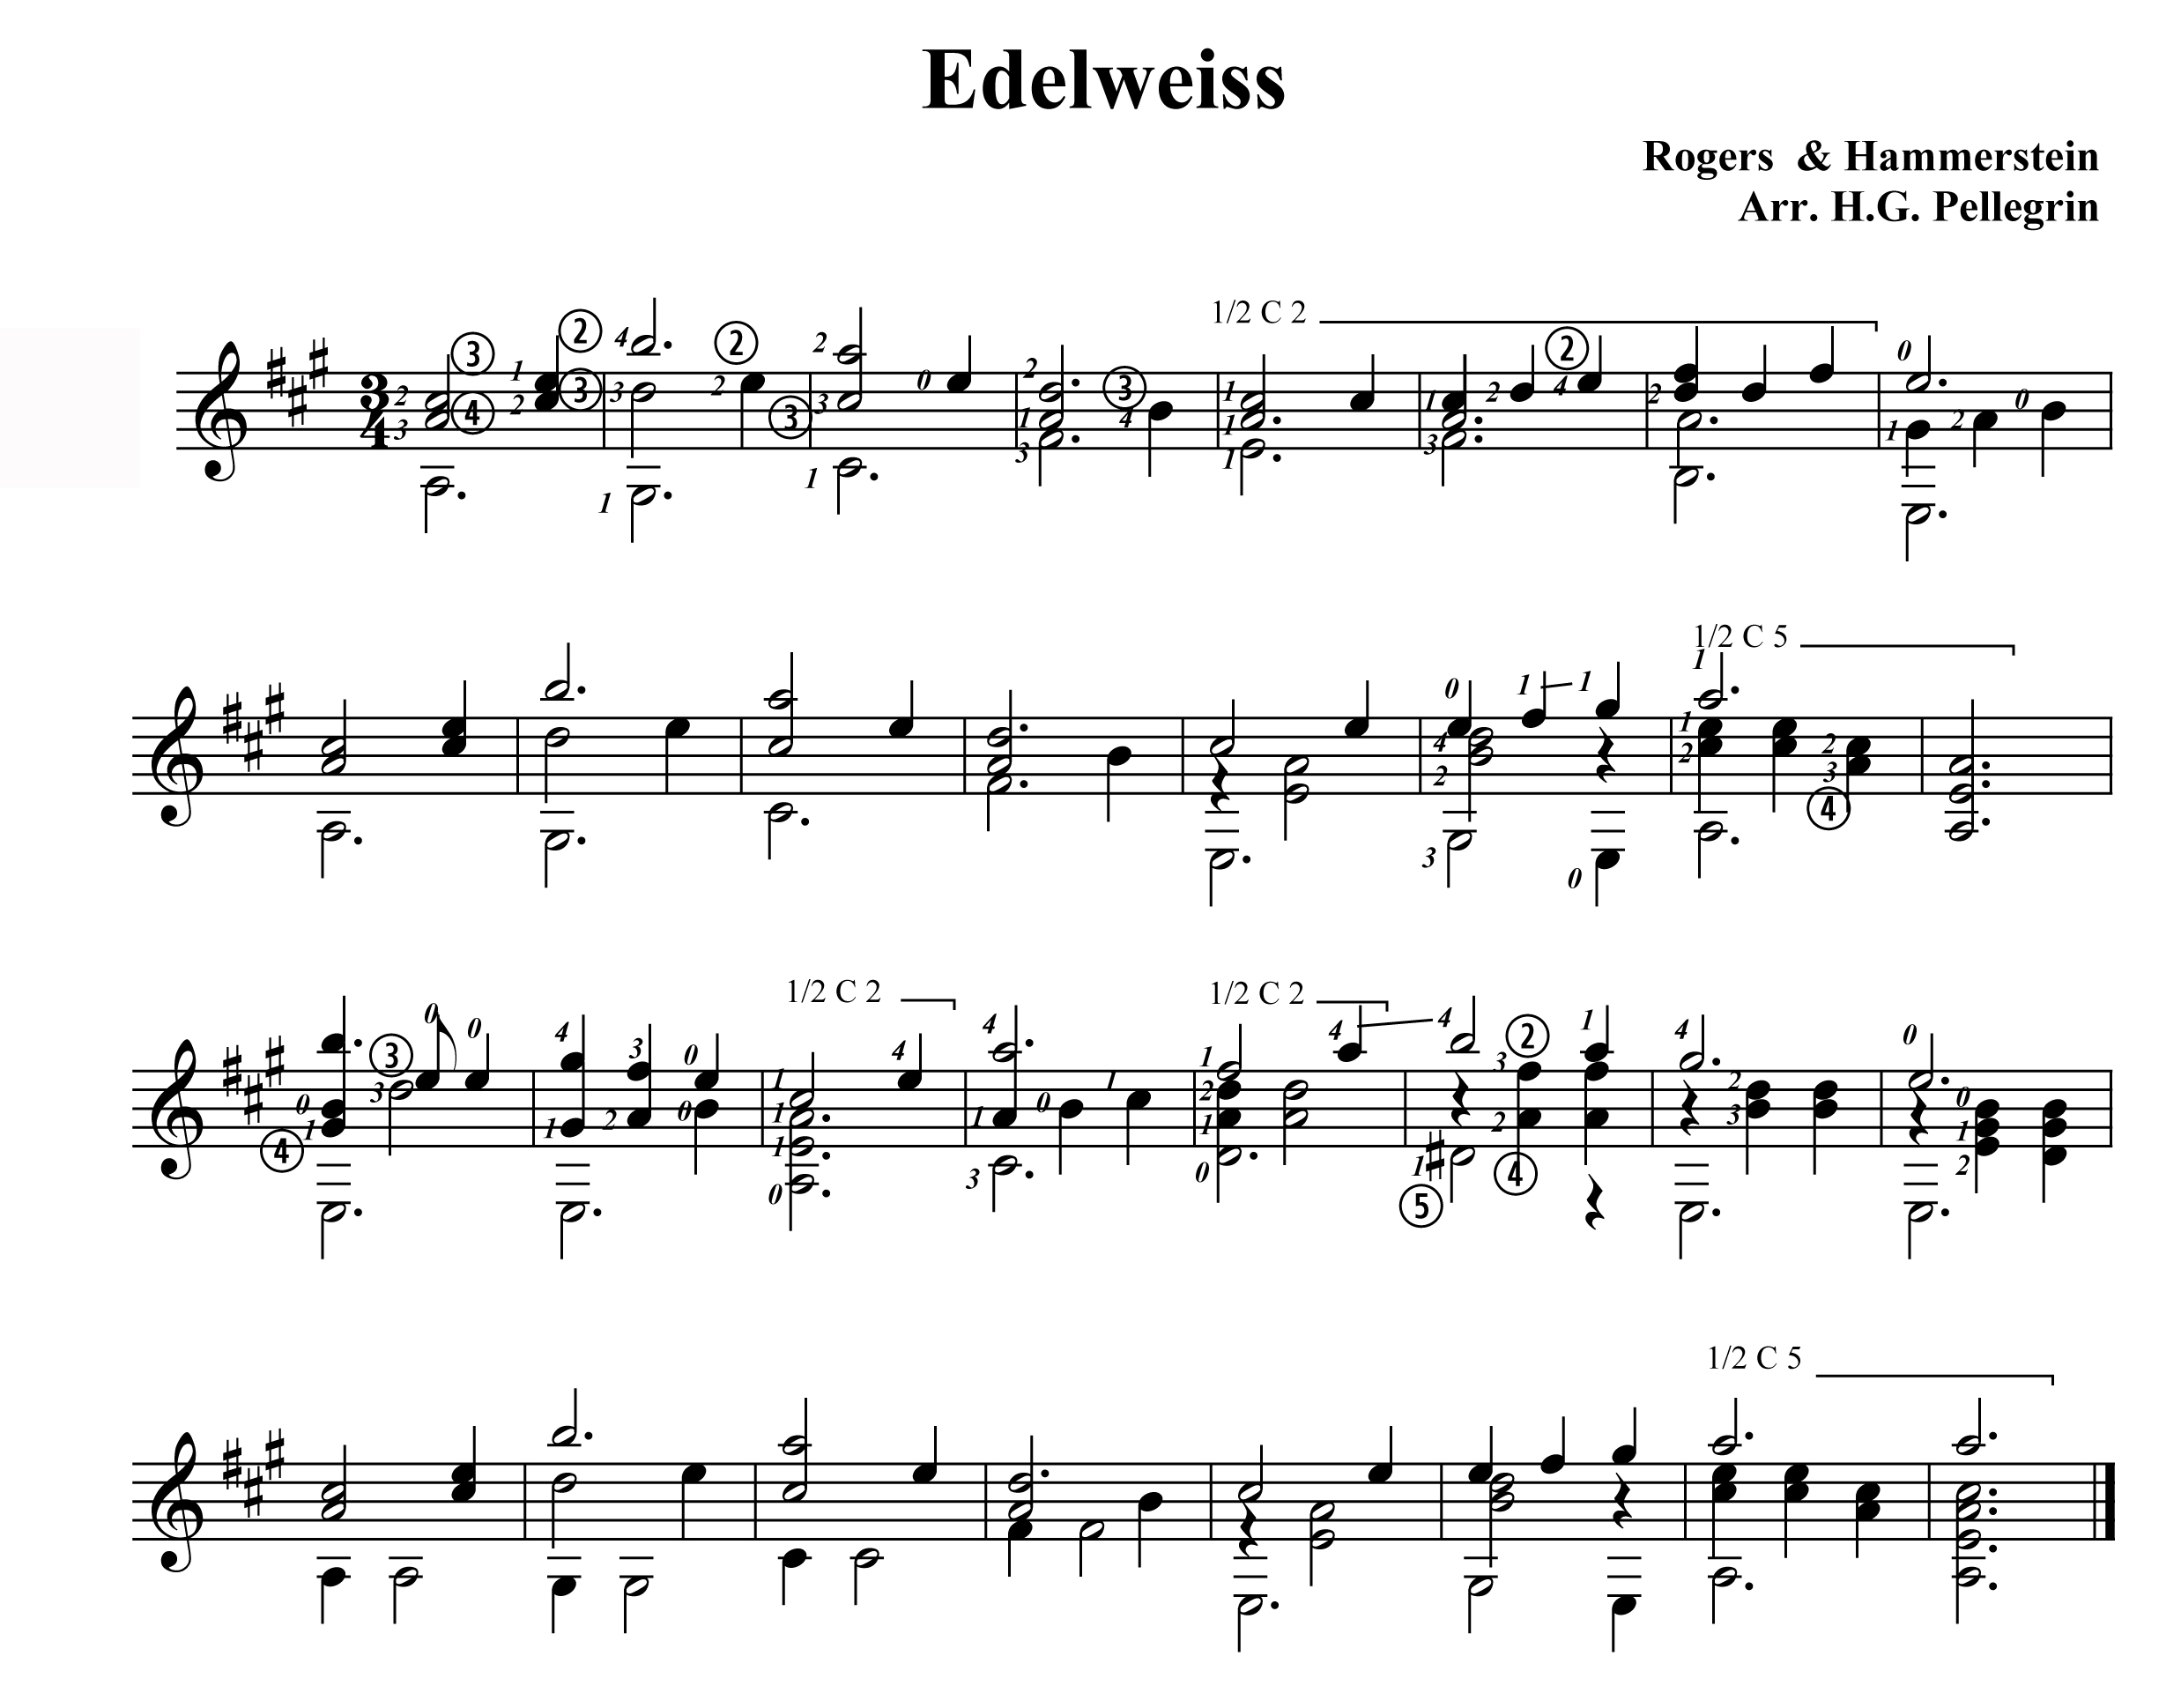 Guitar Chords For Edelweiss Choice Image Basic Guitar Chords